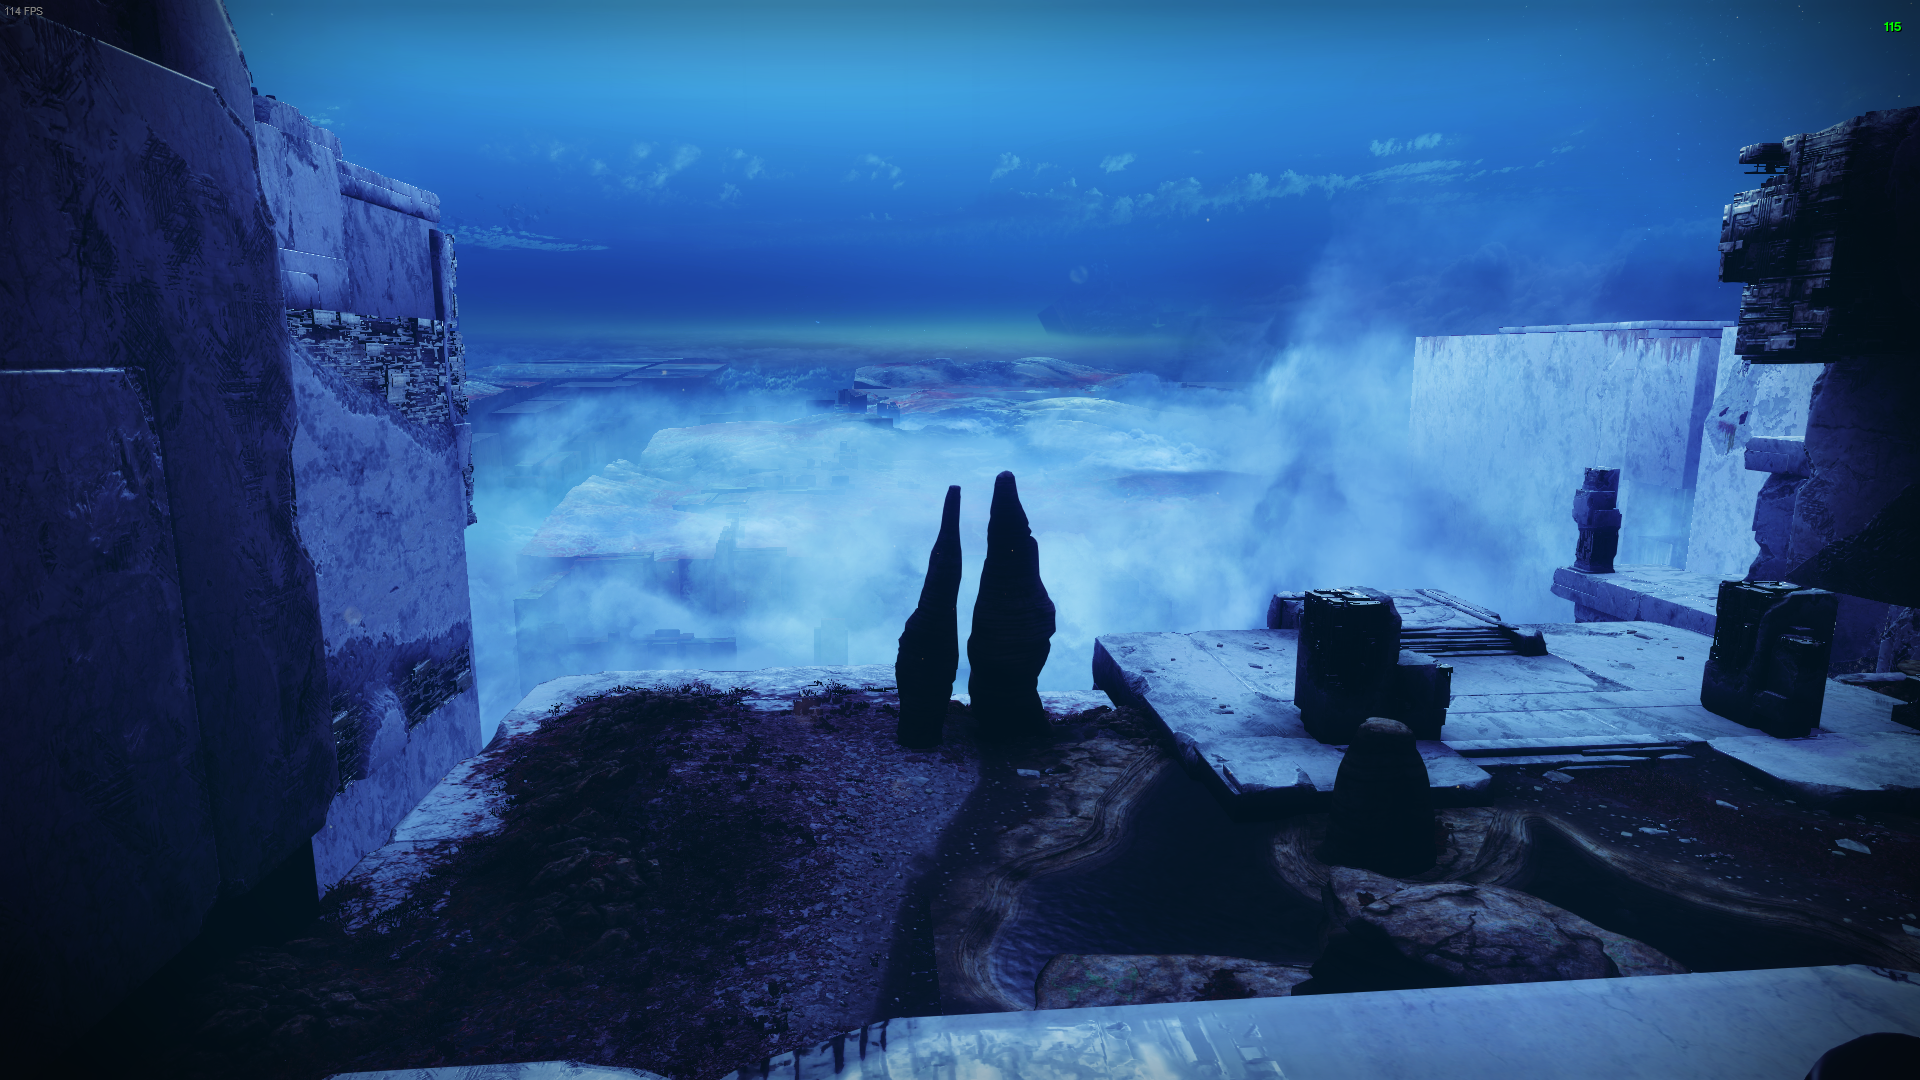 First person. Guardian overlooked a Nessus overhang complete with lake, rock outcroppings, and Vex structures.